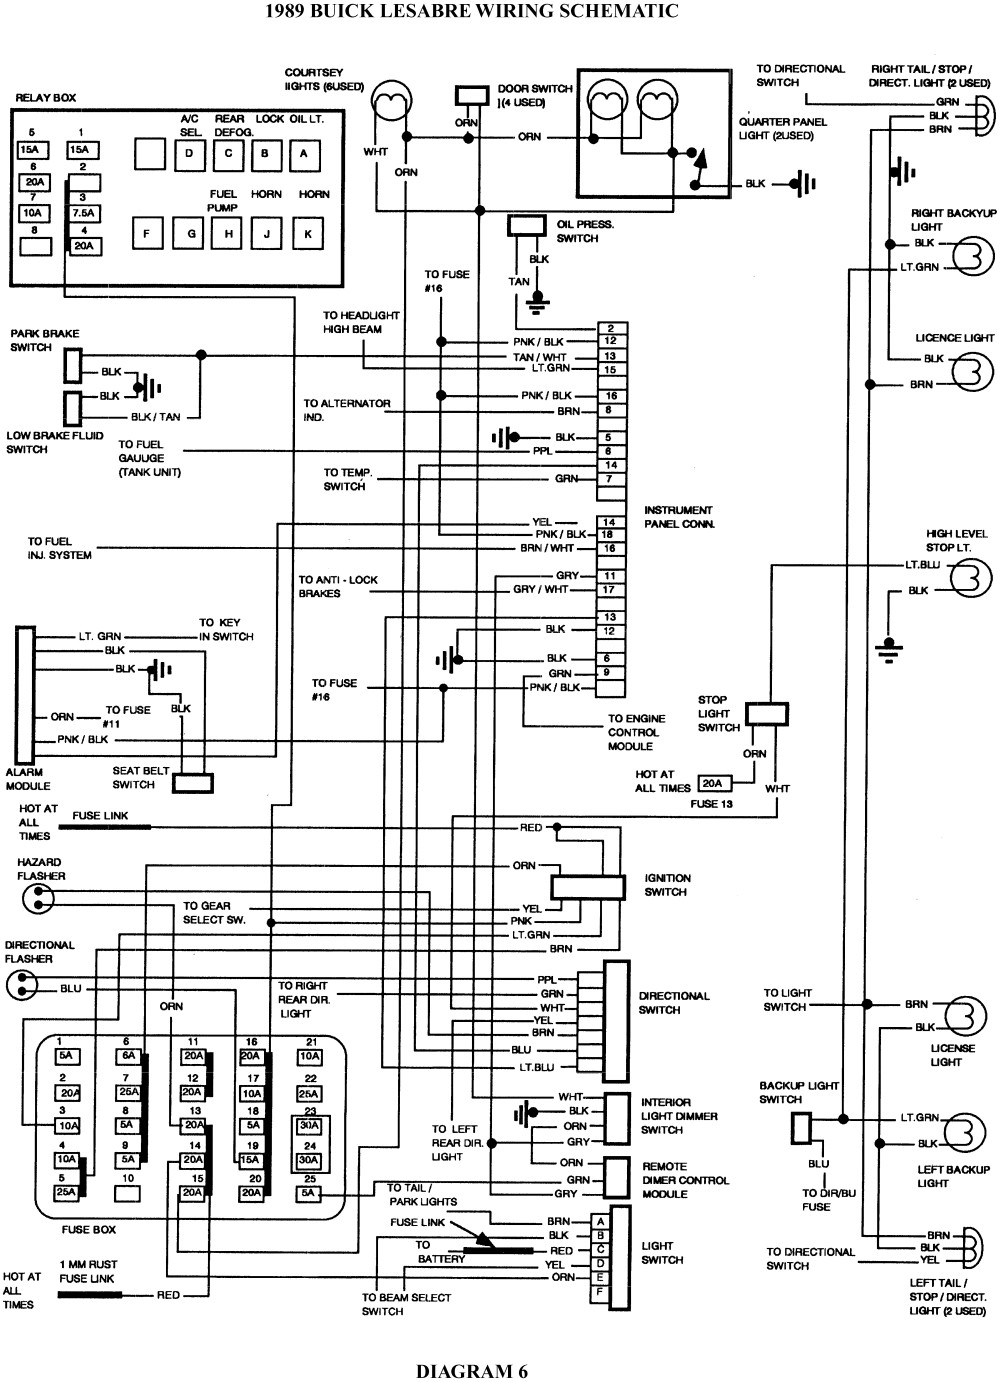 buick radio wiring diagram wiring library 1998 Buick Regal Starter Wiring Diagram 2001 buick century stereo wiring diagram collection 2002 buick century wiring diagram 4 and radio